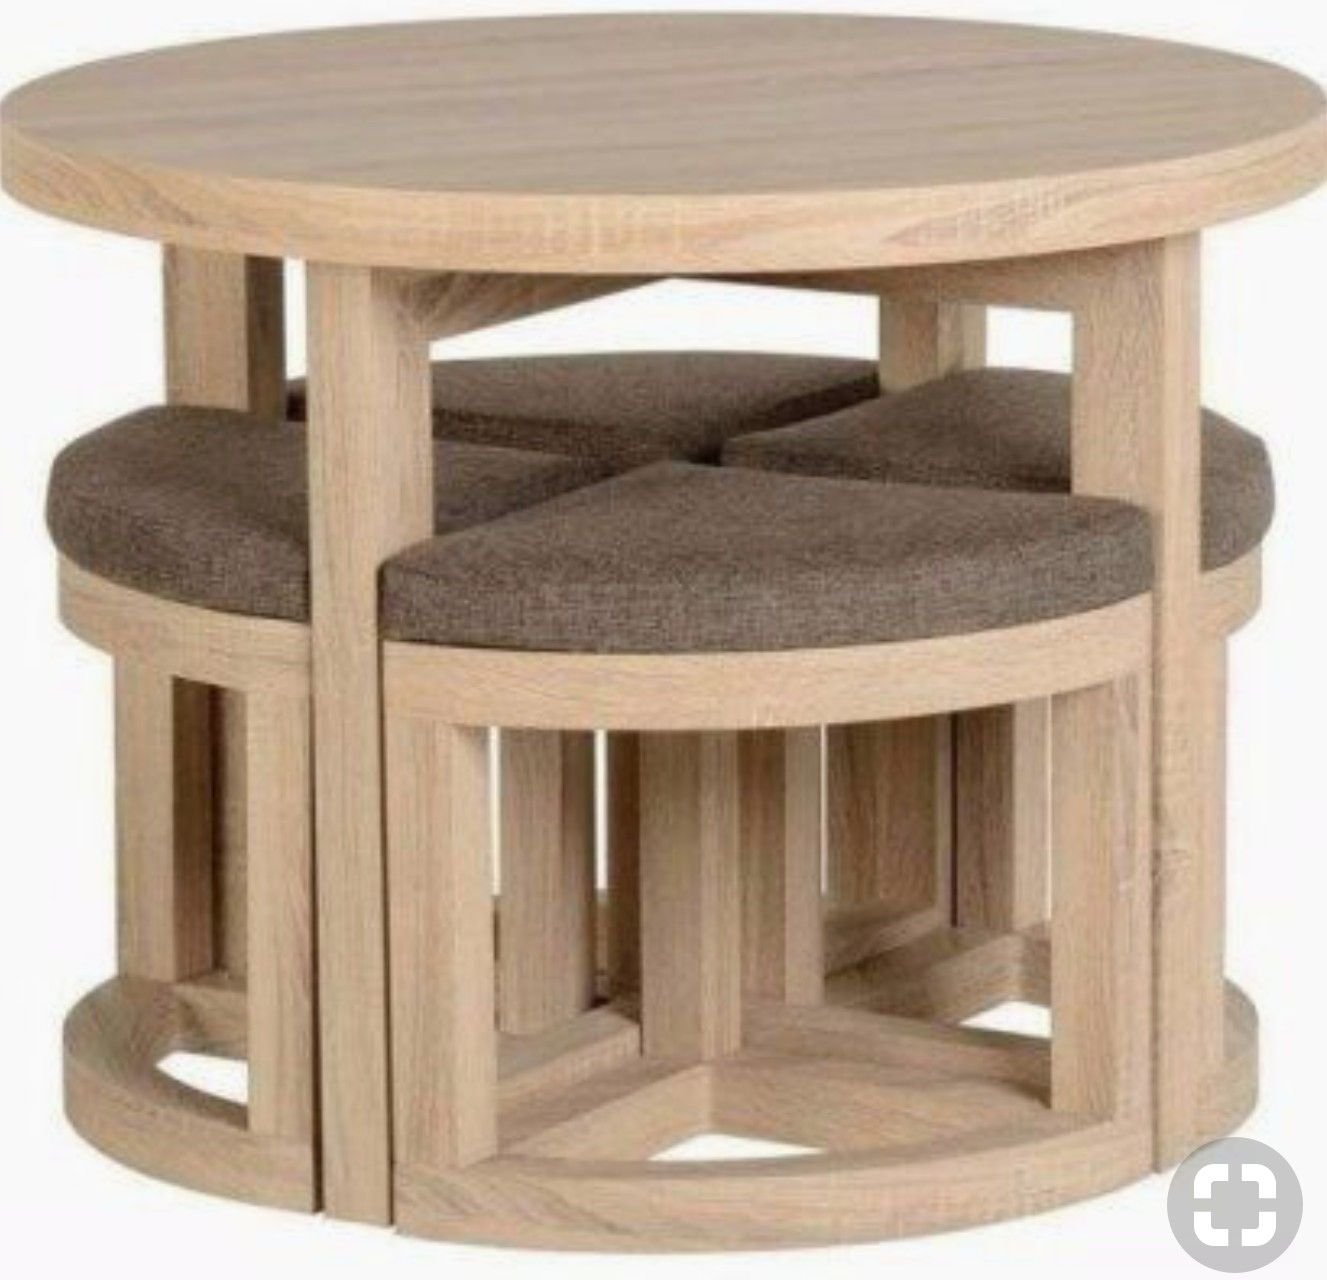 Pin By Jarod On Home Project Ideas Oak Finish Furniture Round Wooden Dining Table Diy Furniture